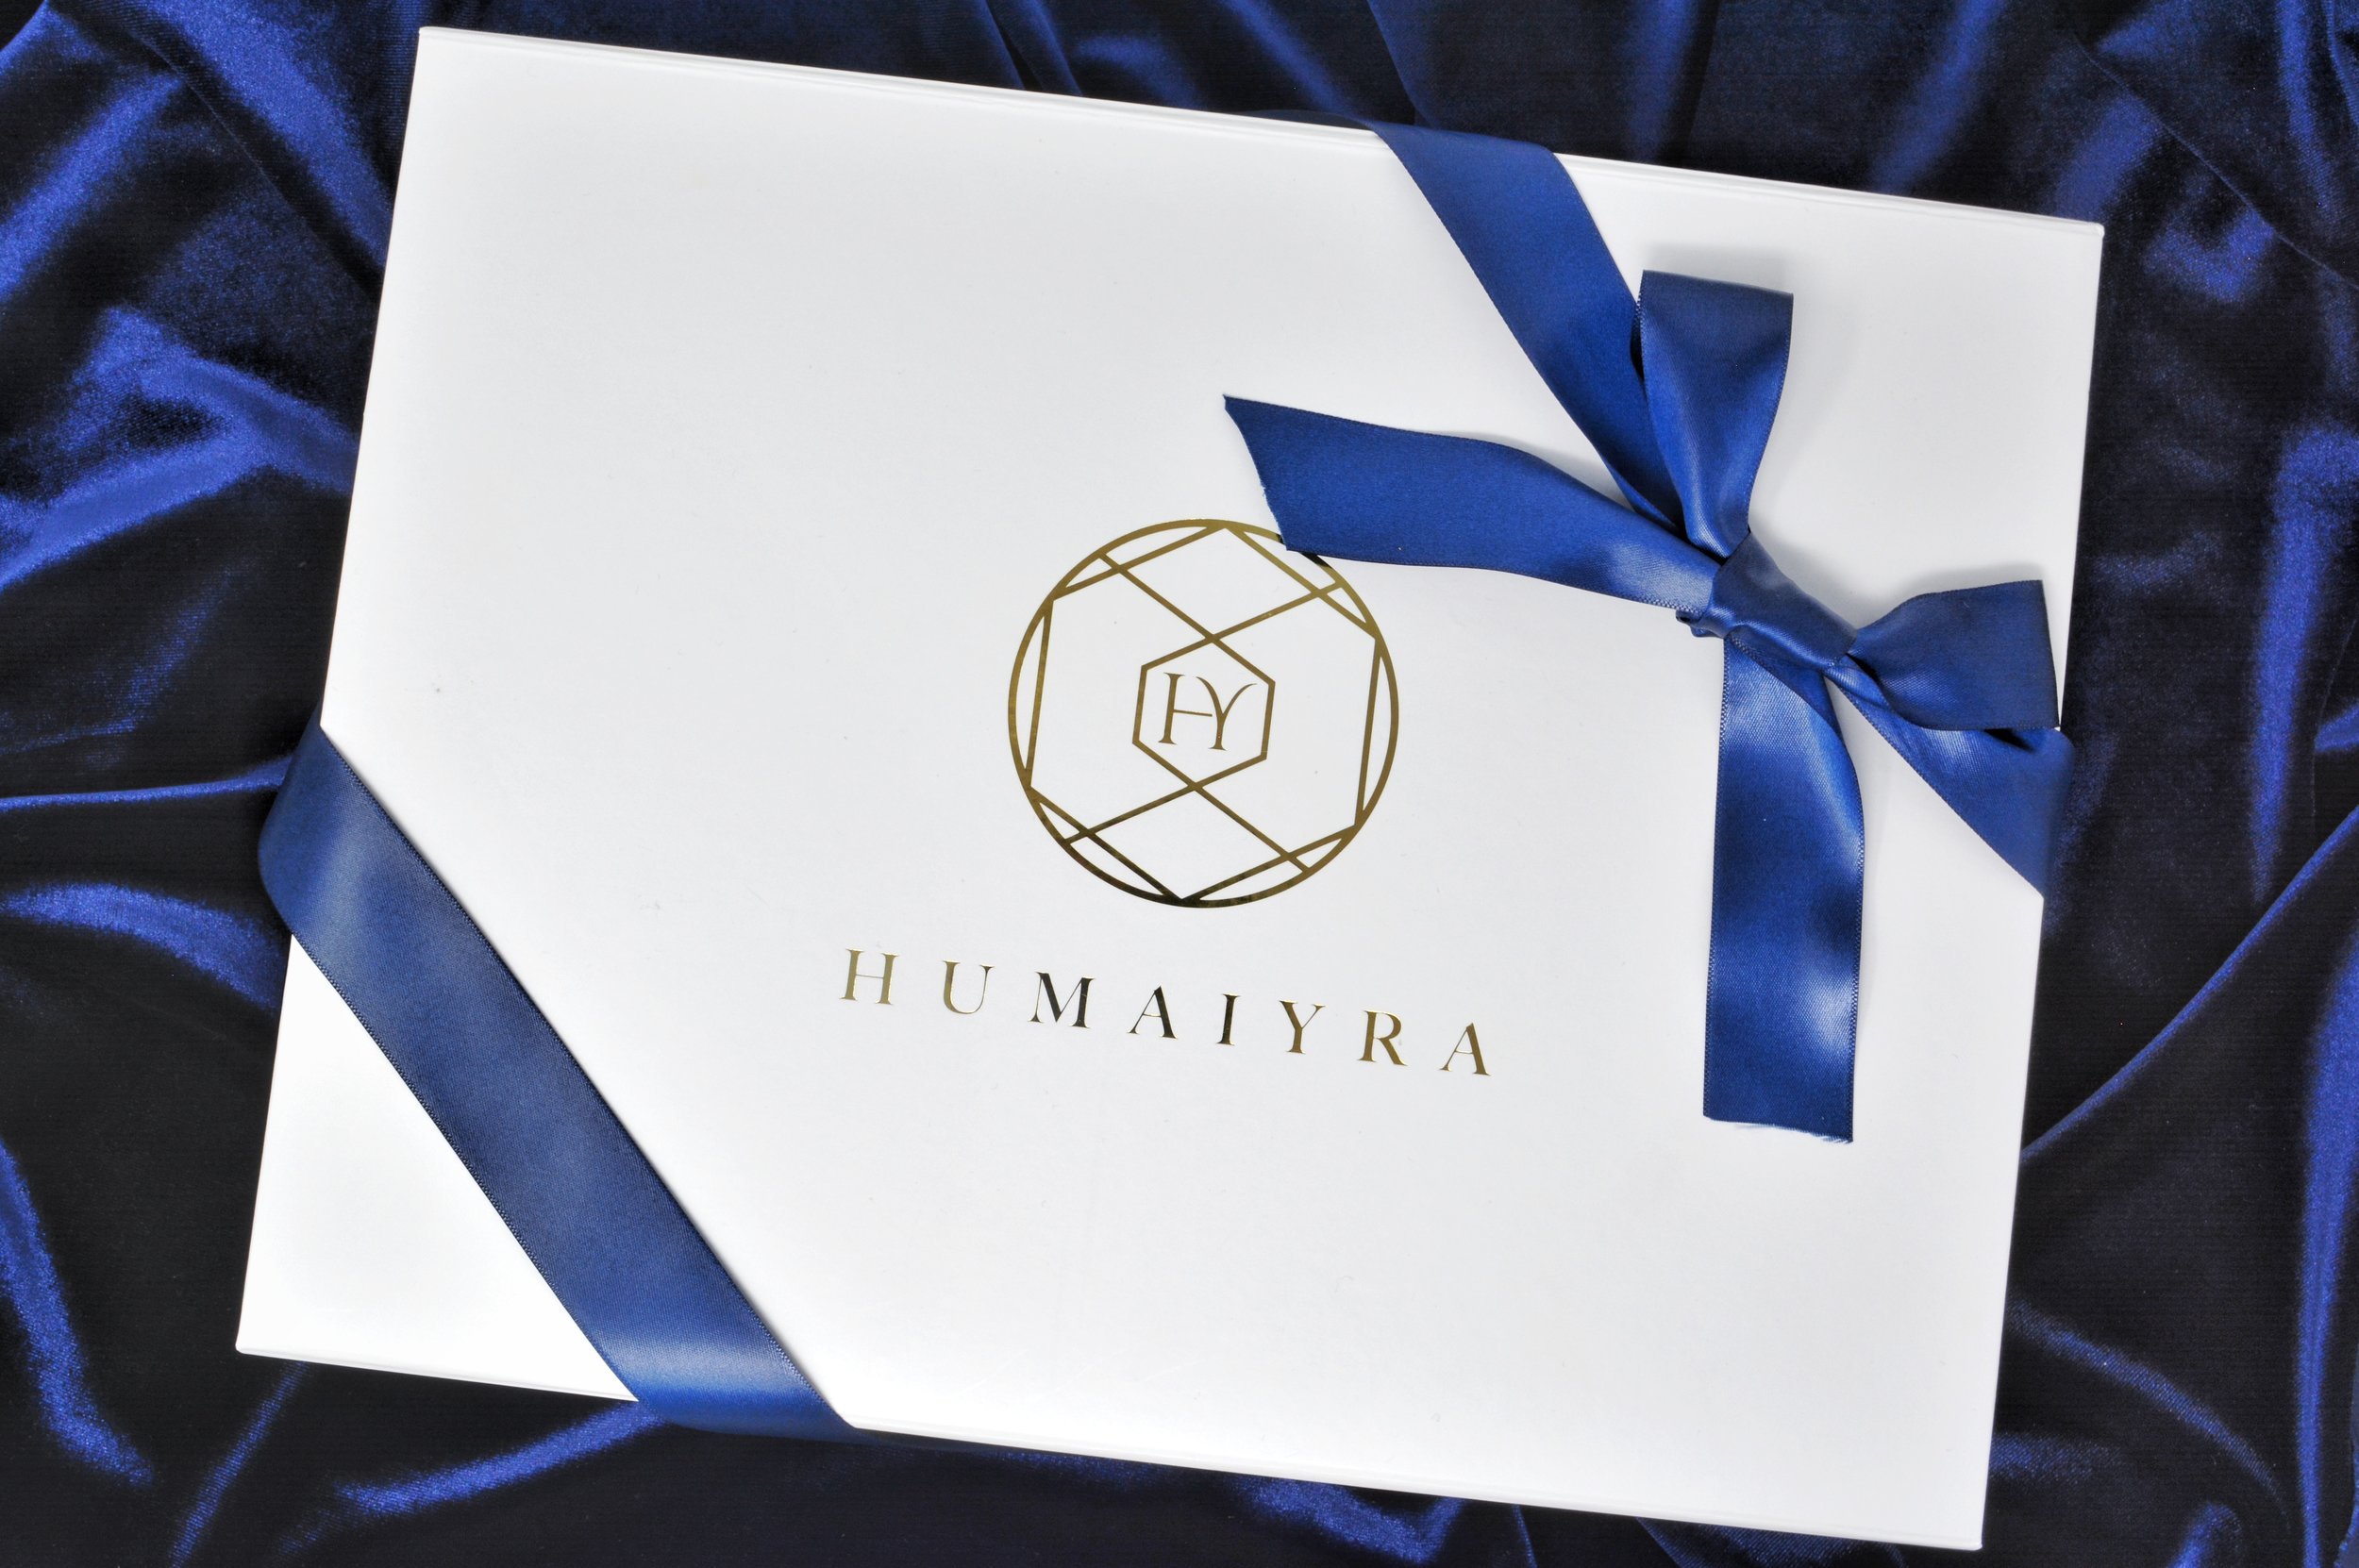 The HY Touch - At Humaiyra we believe that luxury is in every detail. Therefore, we have taken just as much care in choosing the right wrapping for your desired jewels.Each item will arrive housed in our premium box expertly tied and sealed with an elegant bow.